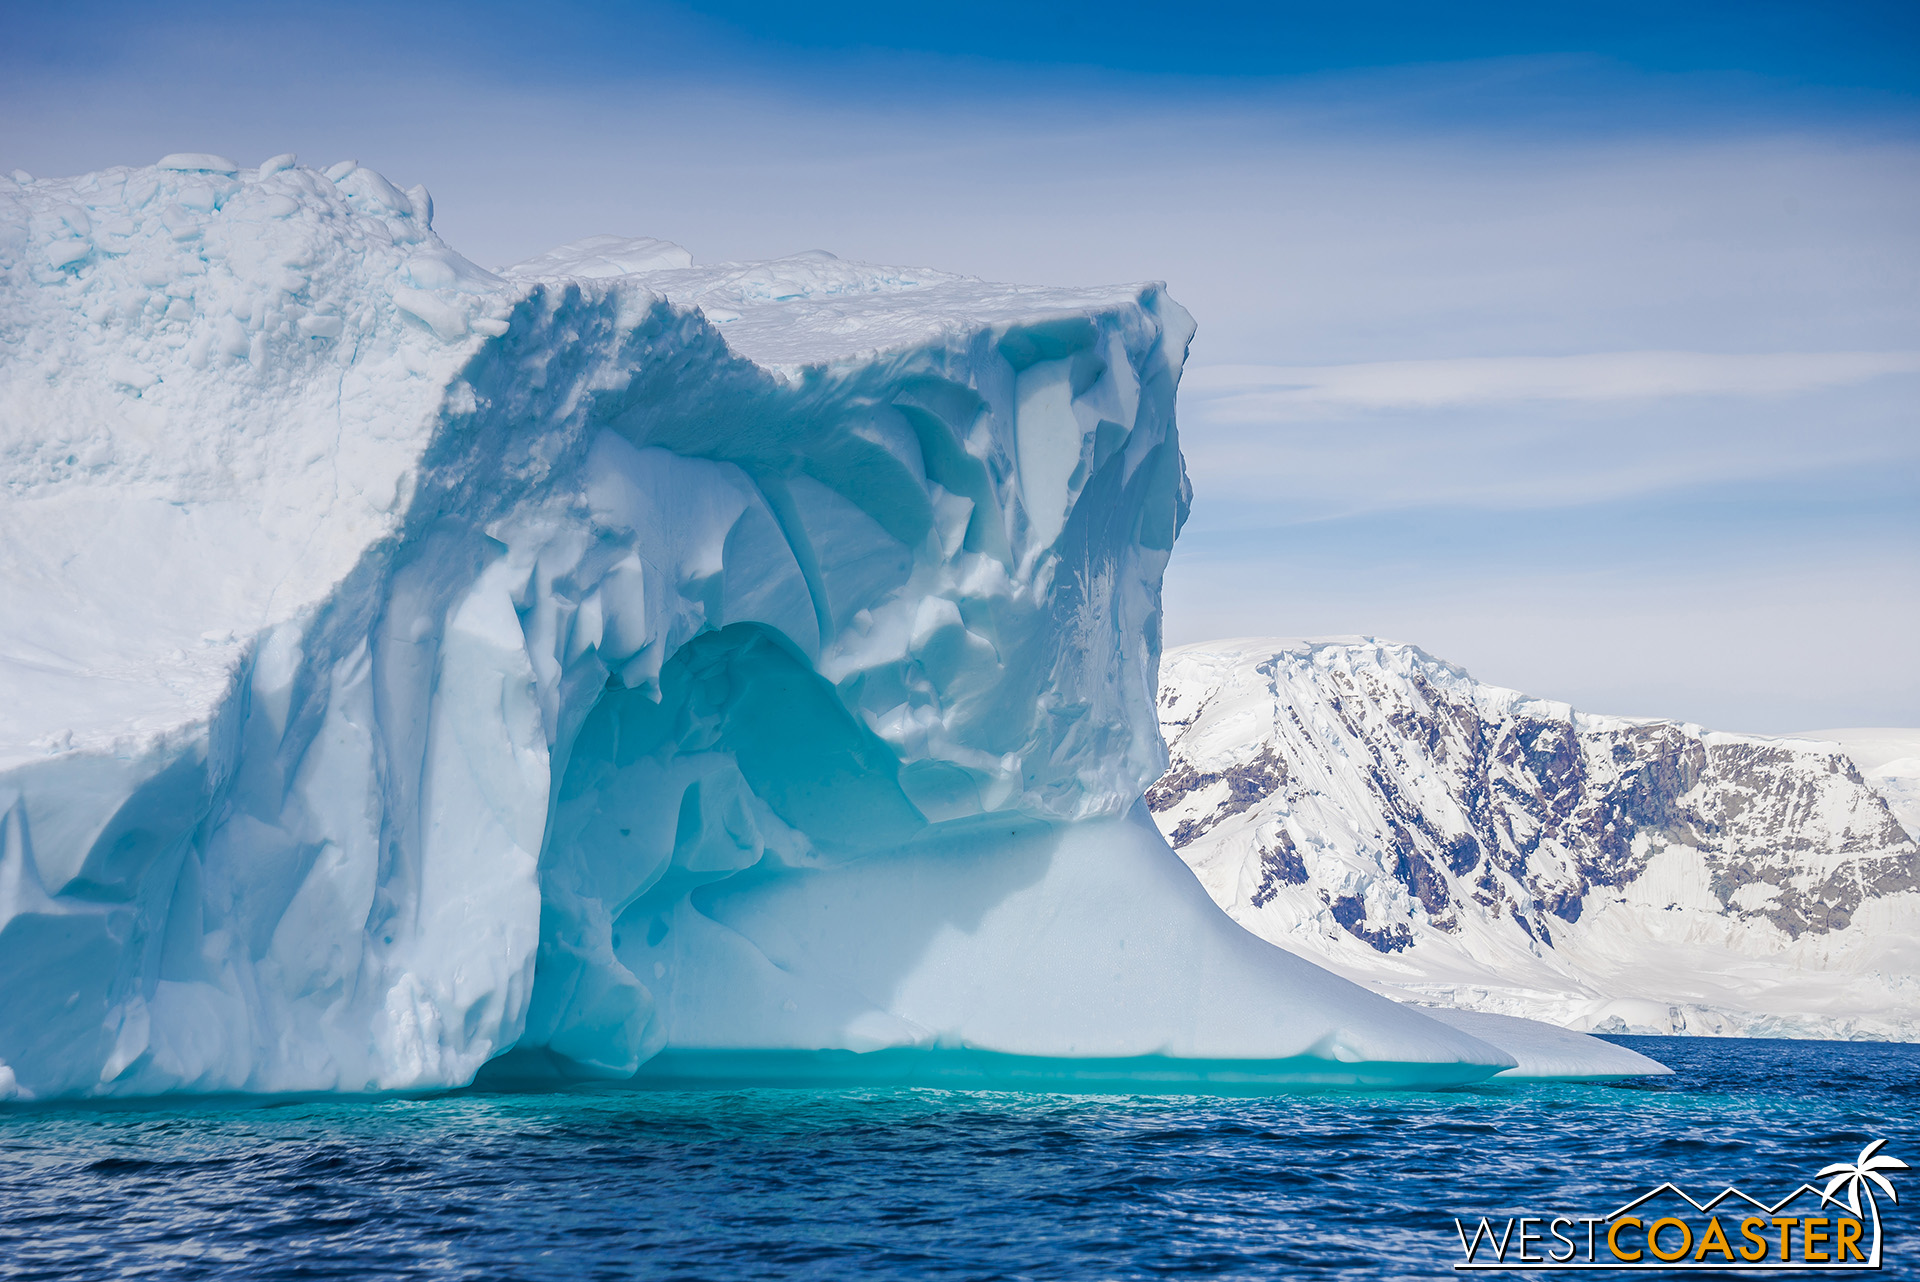 The captivating blue colors and shaped texture of the packed snow and ice are exquisite.